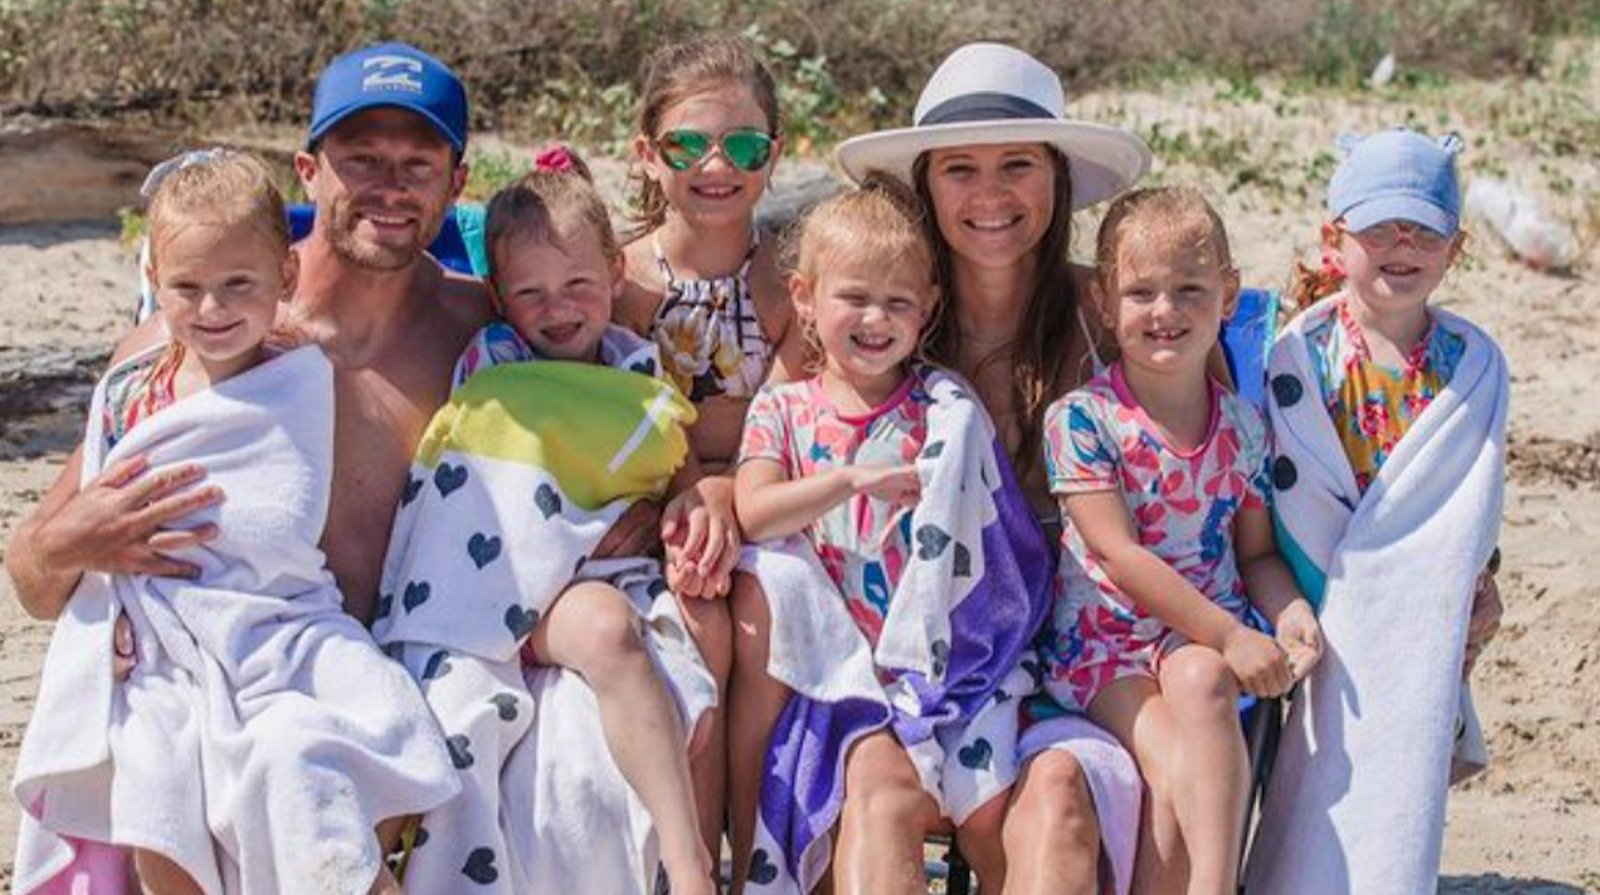 OutDaughtered Rumors That Turned Out To Be Completely False